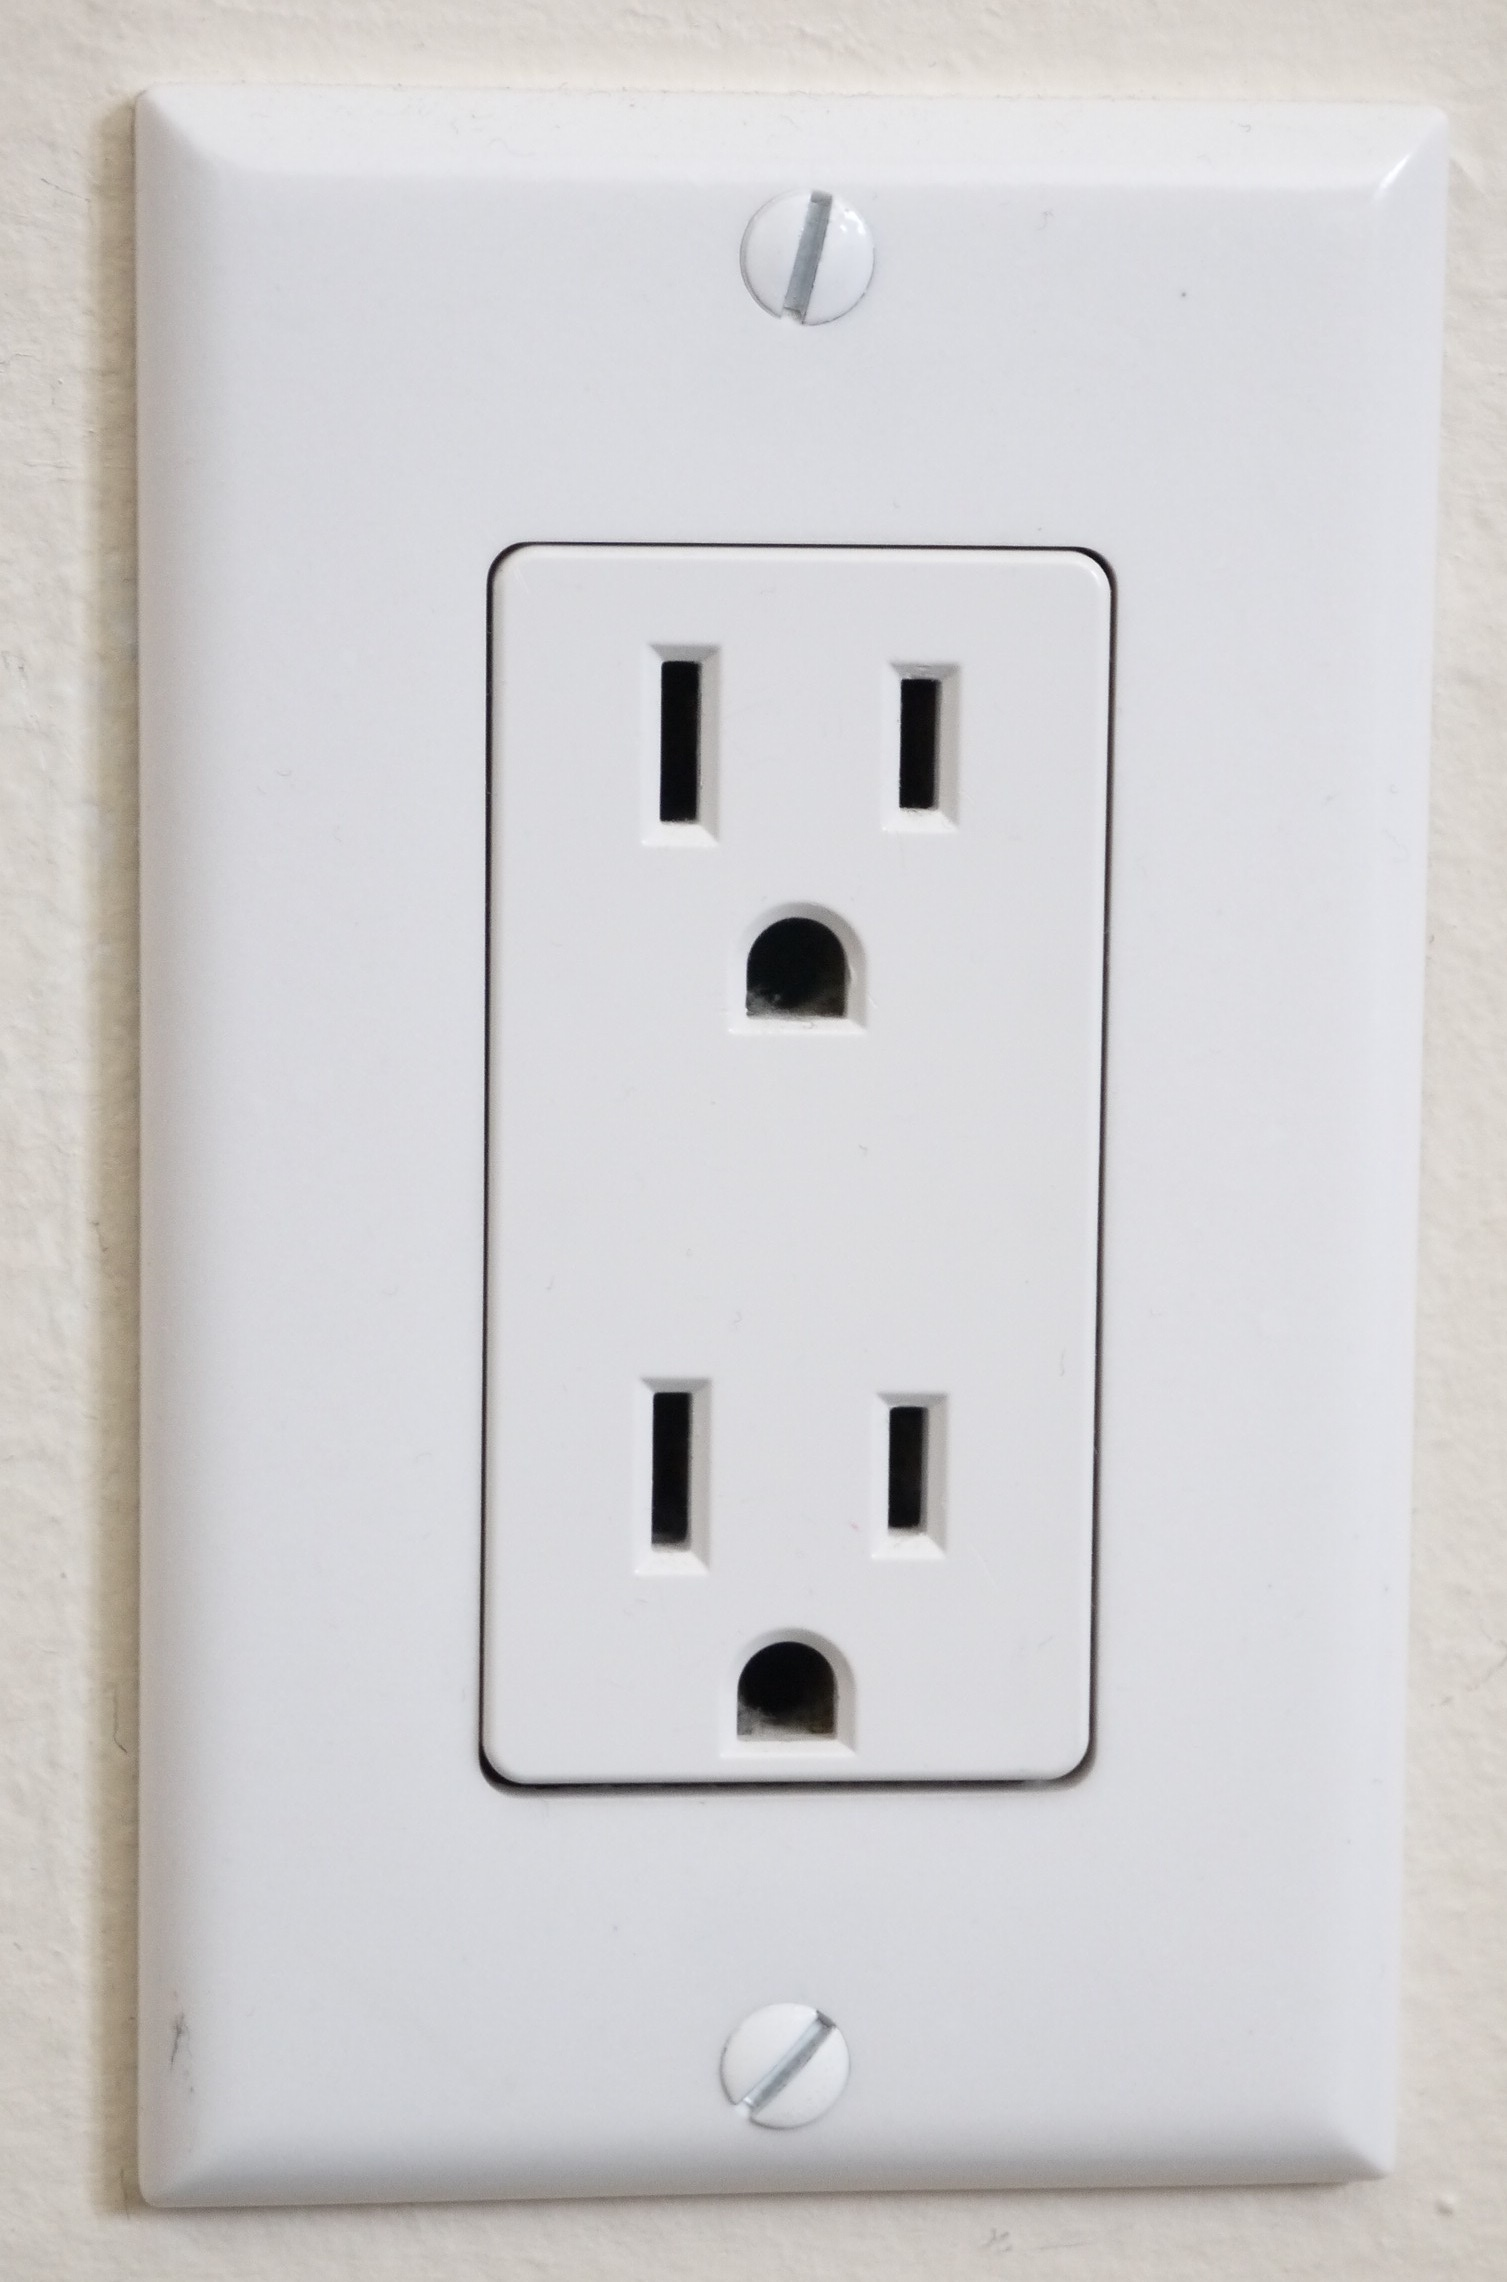 hight resolution of the prongs on the us power socket